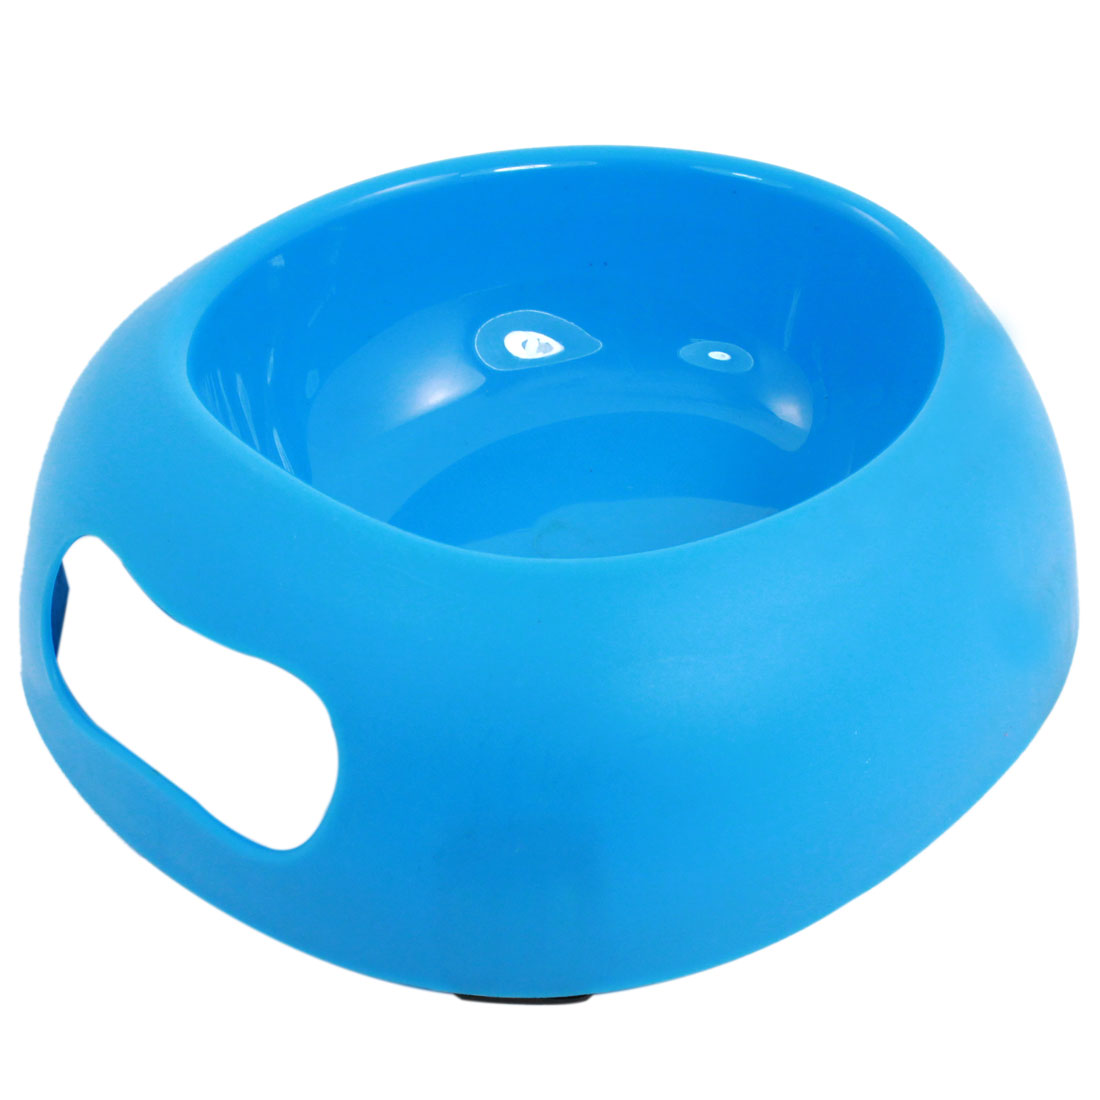 Blue Plastic Egg Shape Food Water Drinking Bowl Dish for Pet Cat Dog